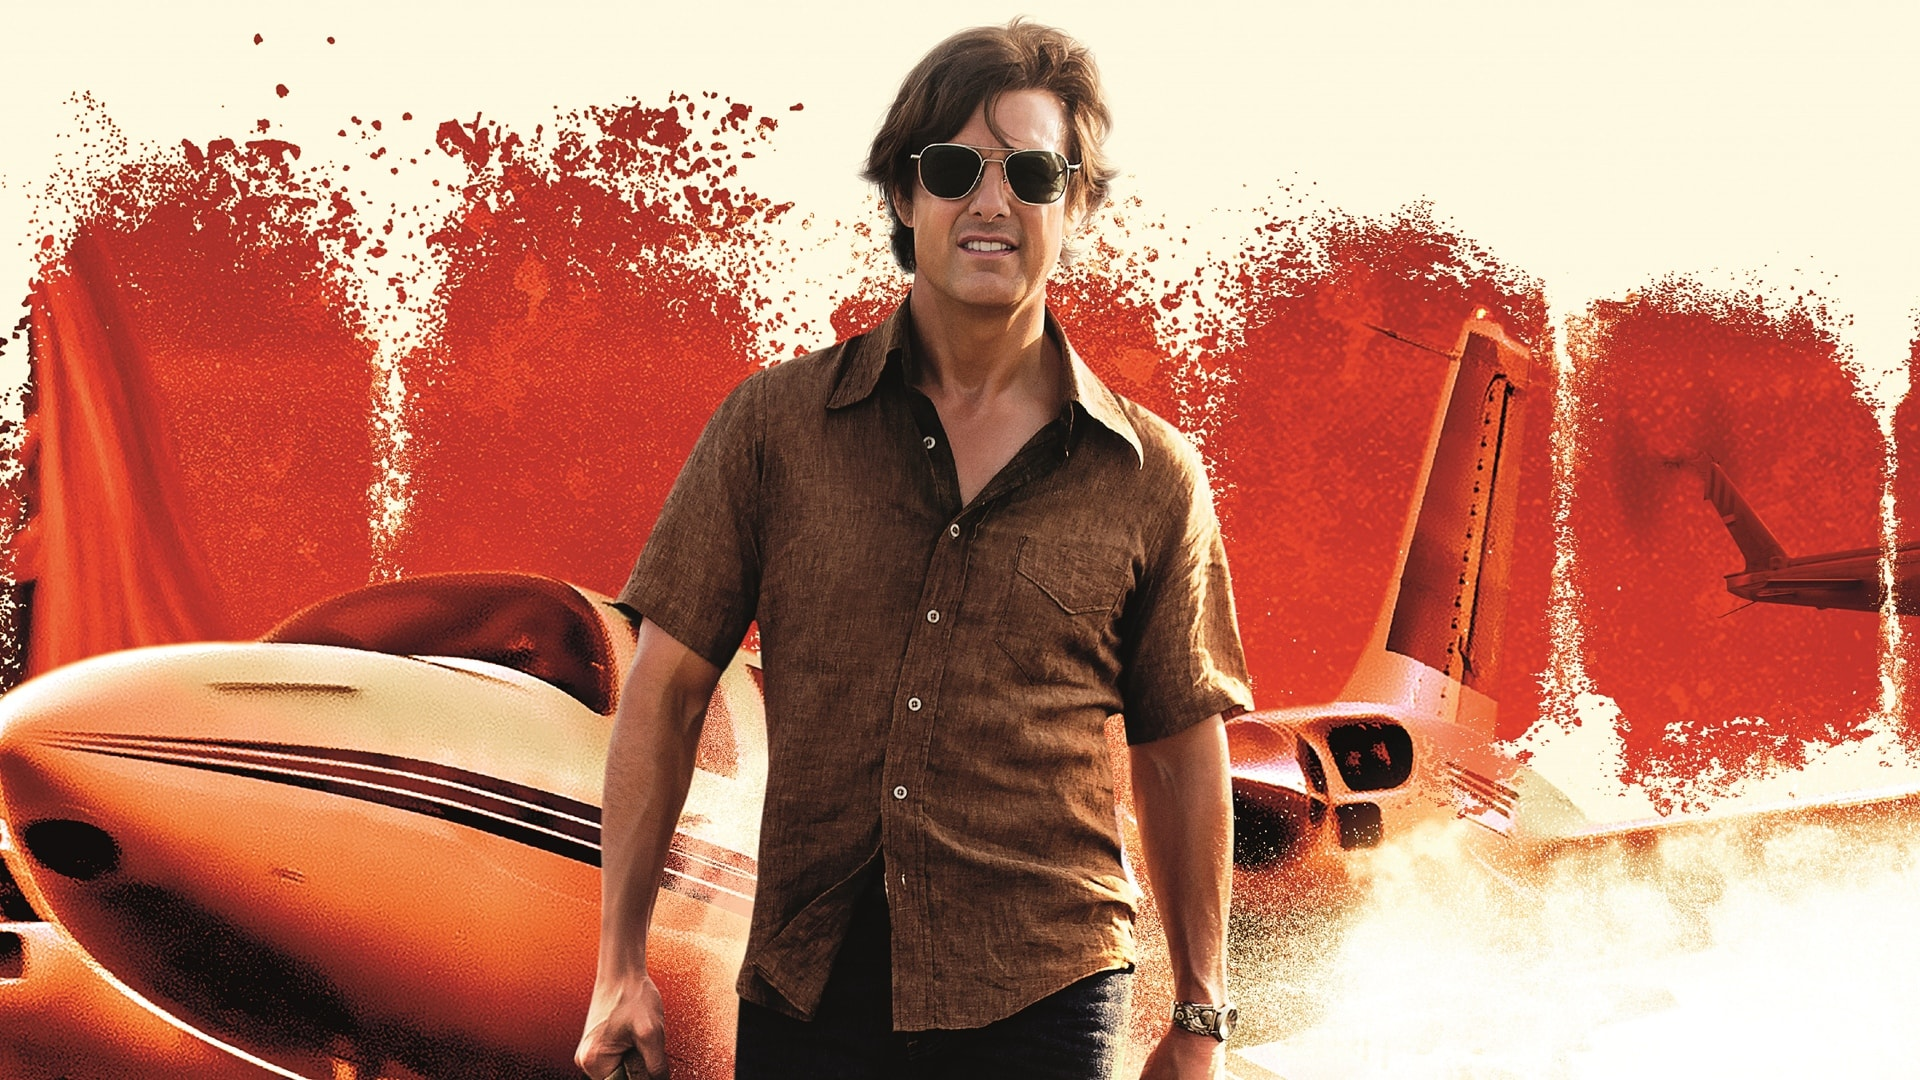 American Made Wallpapers hd